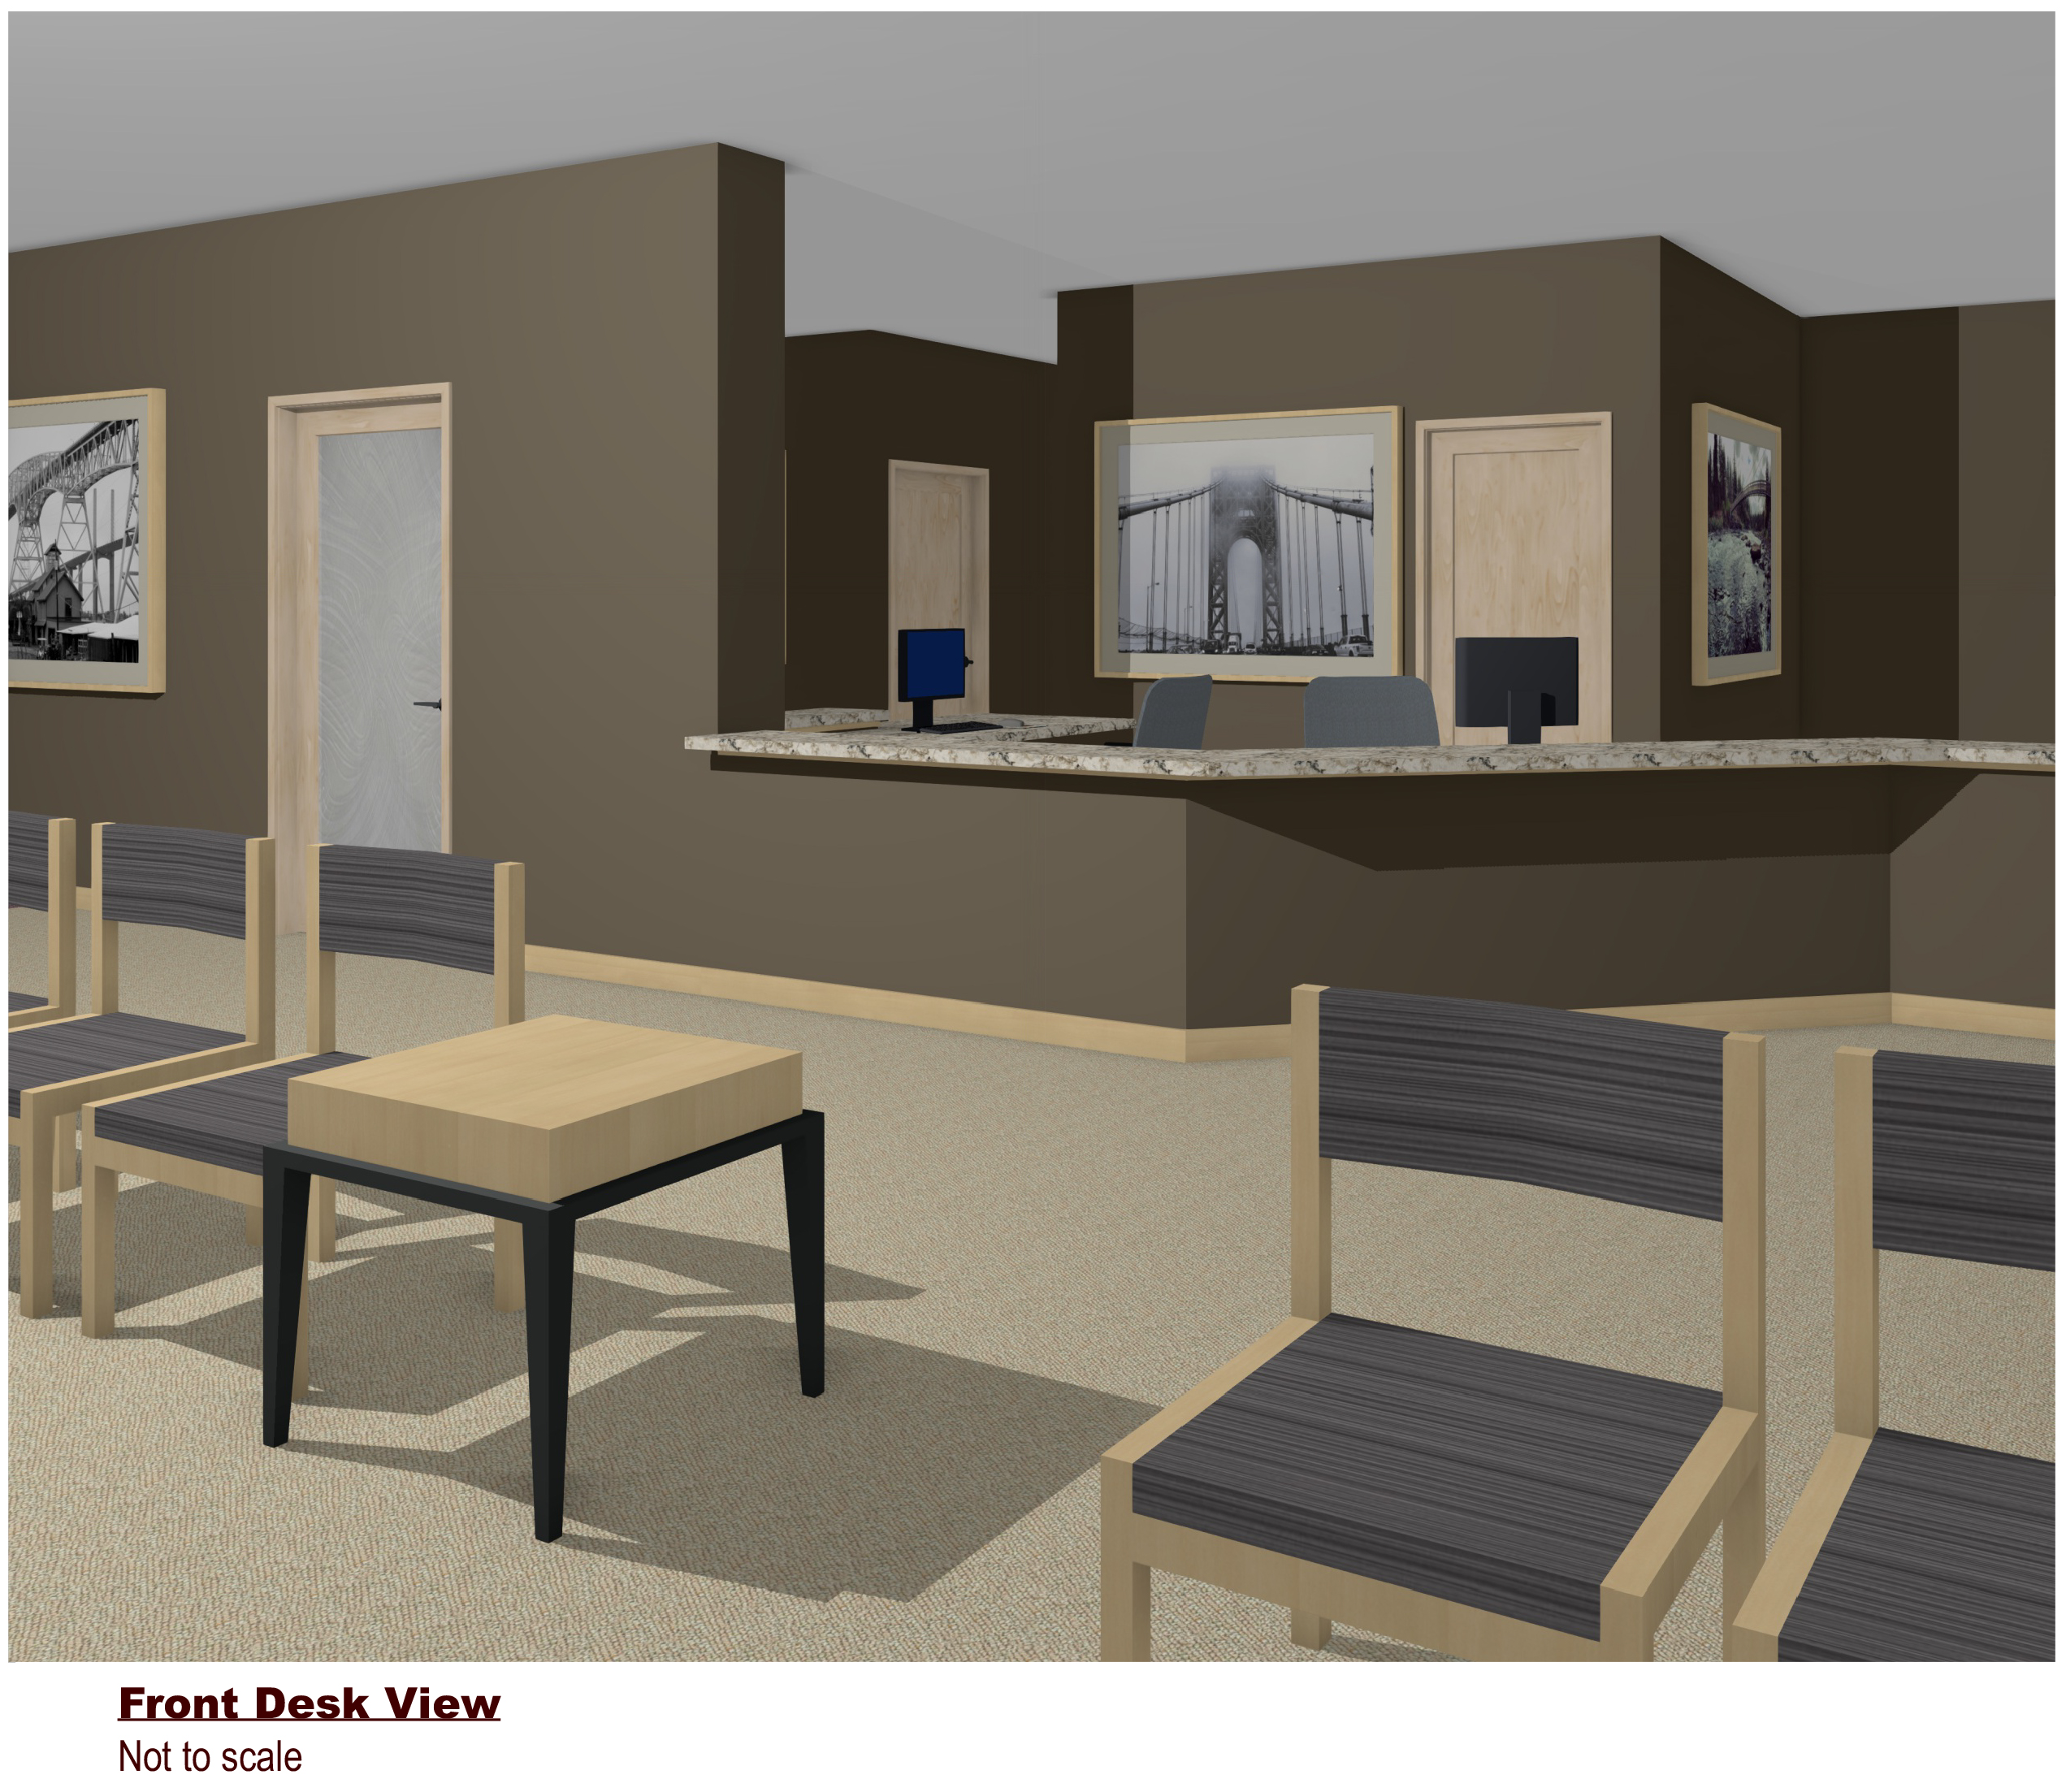 Children's Dental office planning and design – Front Desk View